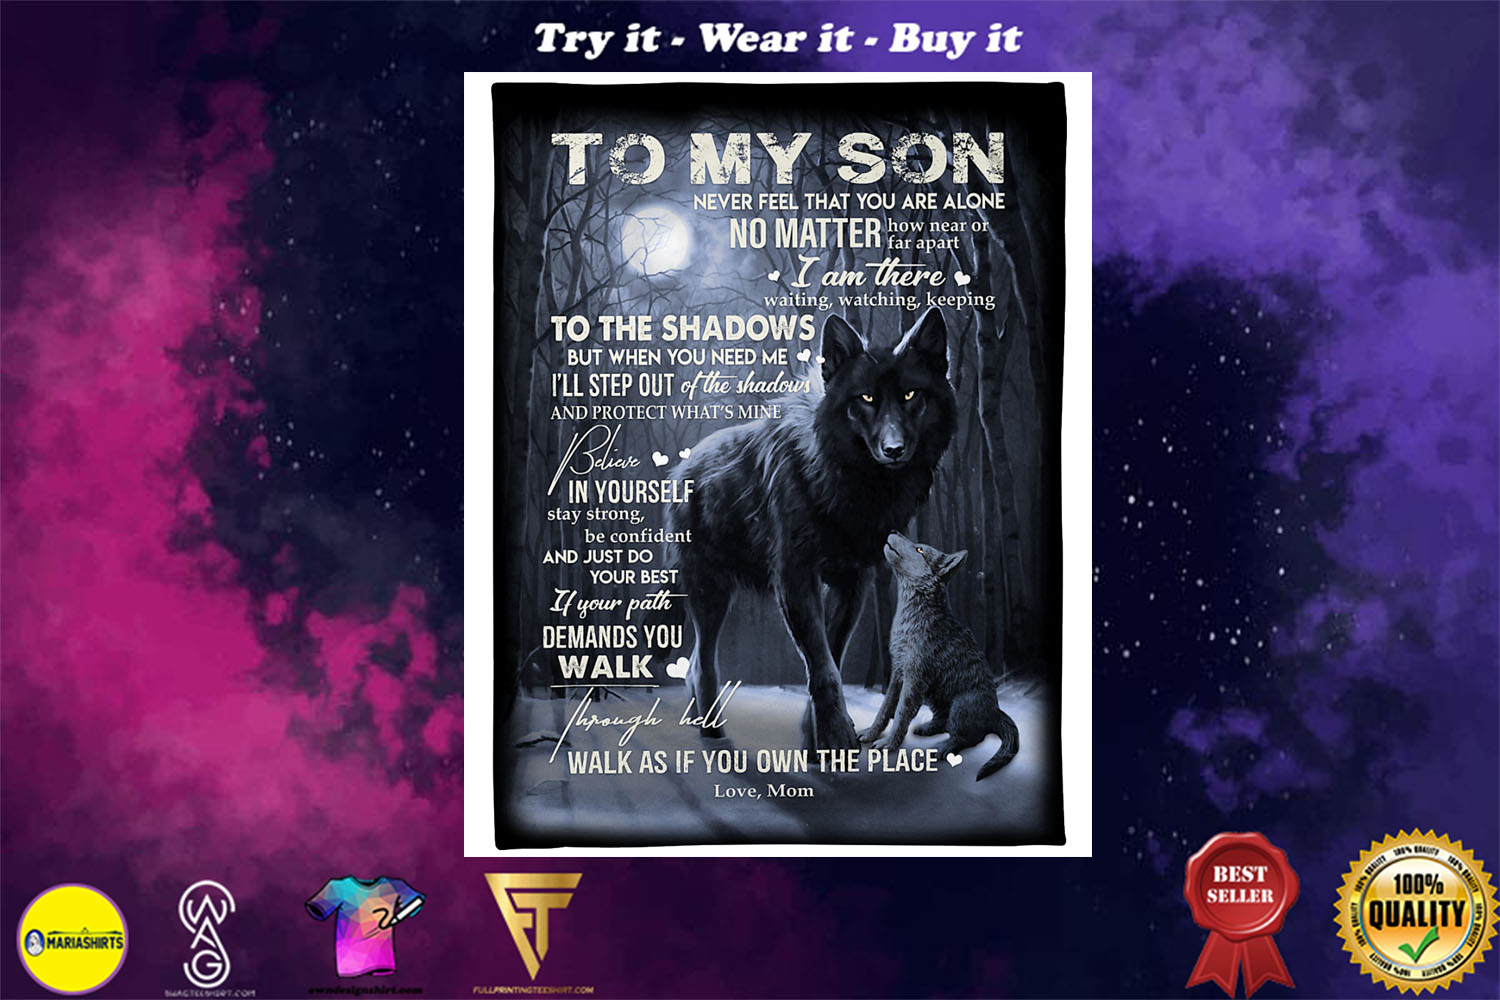 wolf to my son walk as if you own the place love mom blanket - Copy (2)